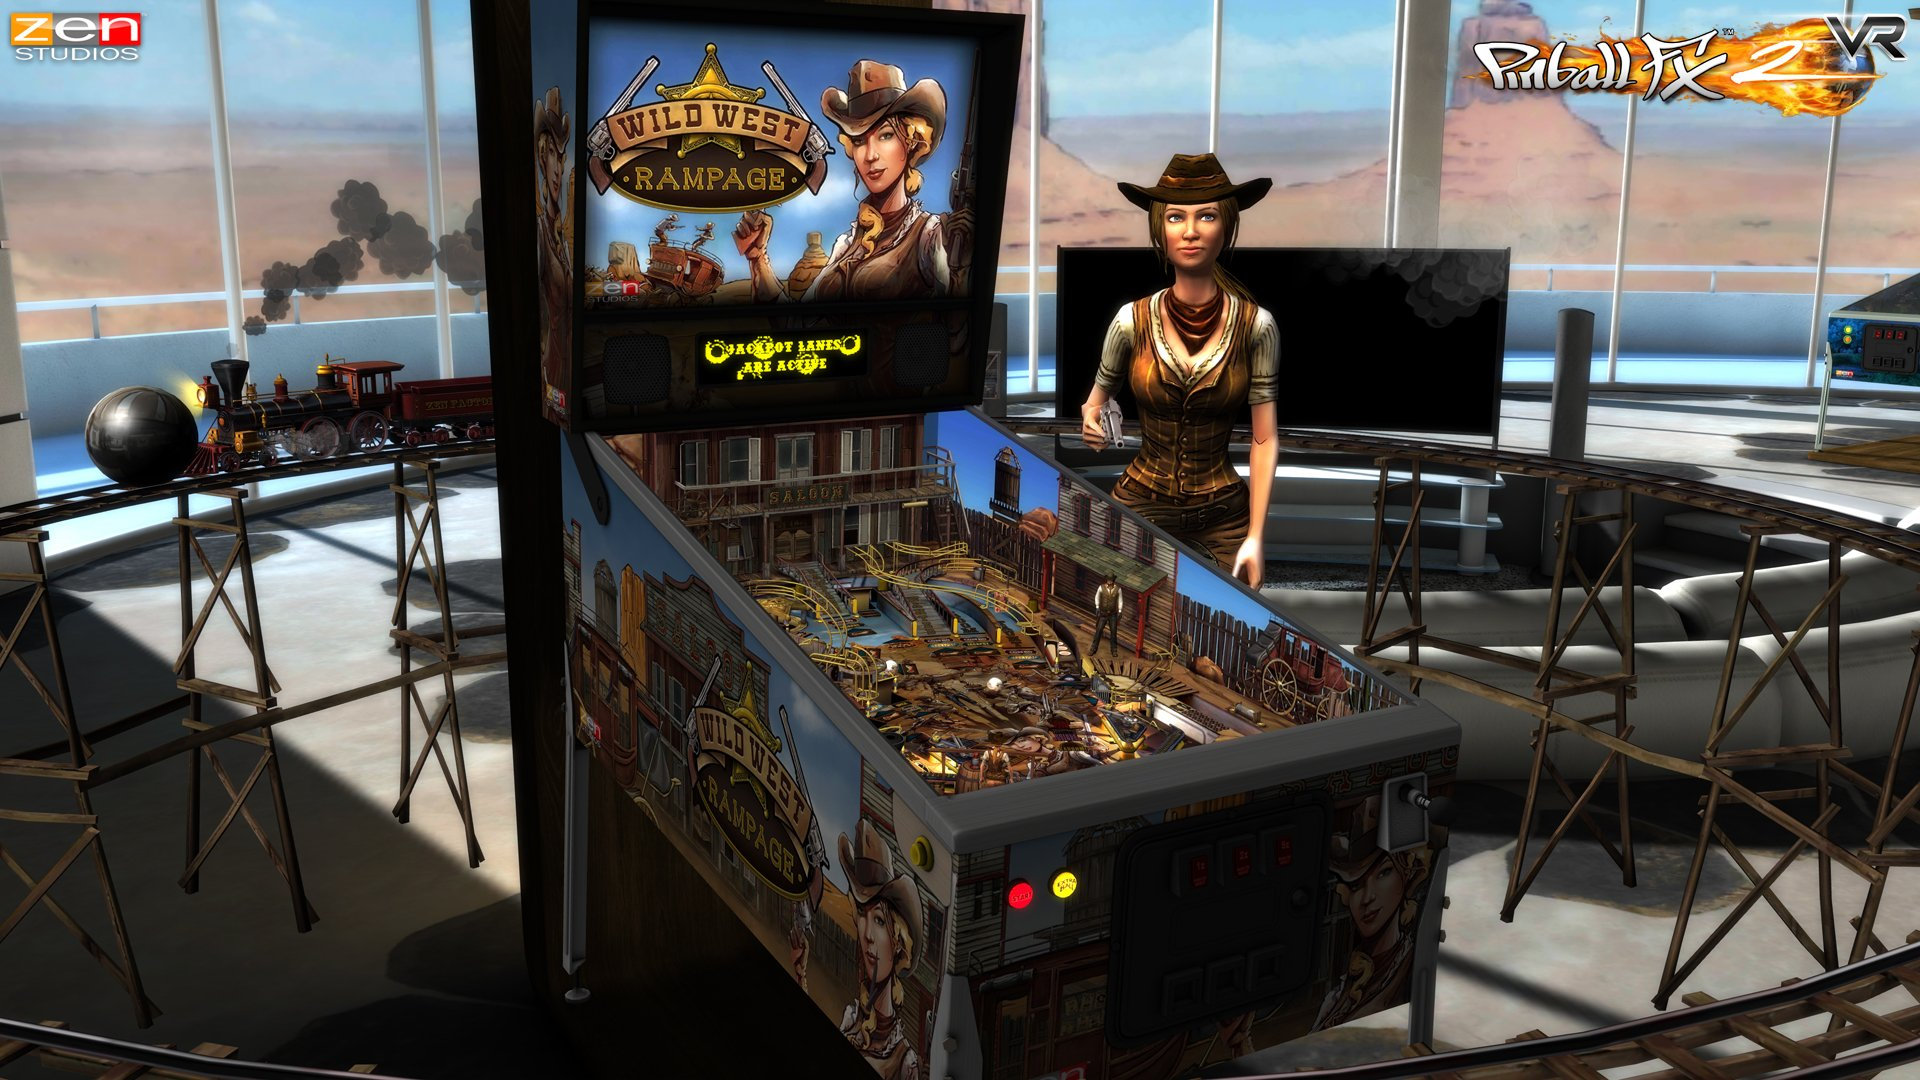 Pinball_FX2_VR_gear_vr_screenshot_WildWest